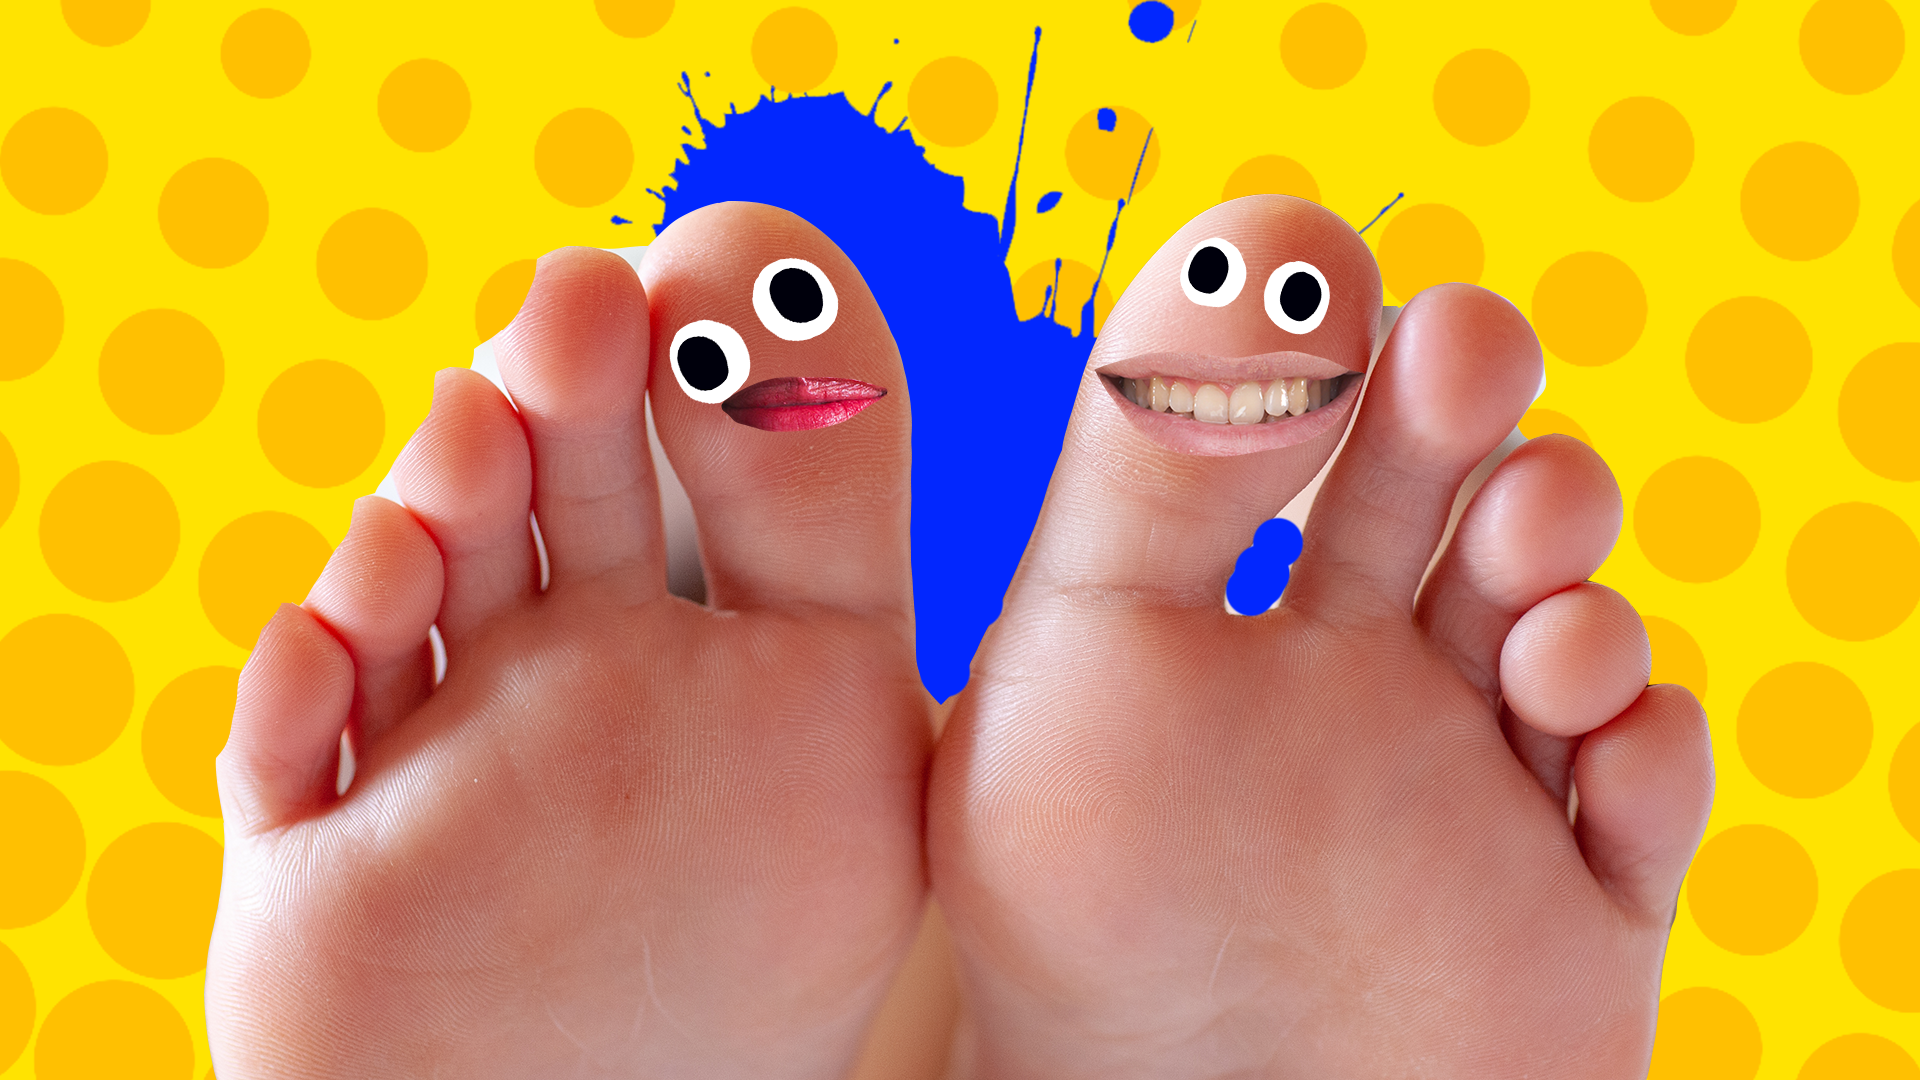 A pair of feet with the toes grinning